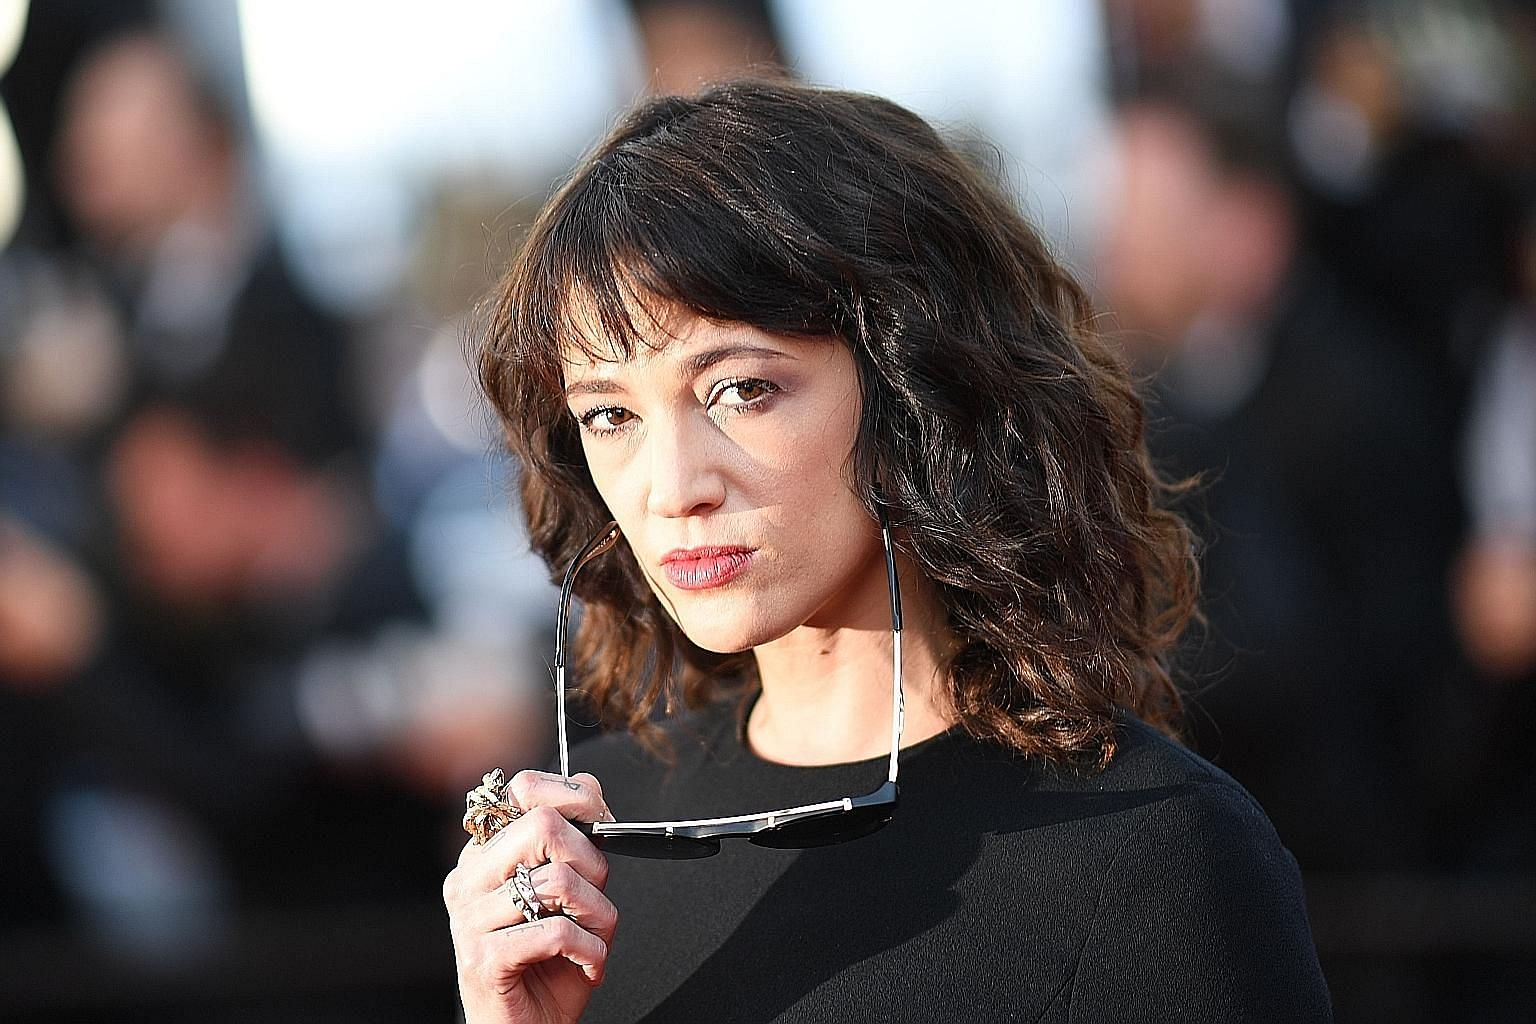 A leading proponent of the #MeToo campaign, Asia Argento reportedly paid an actor hush money after having sex with him when he was still underage.